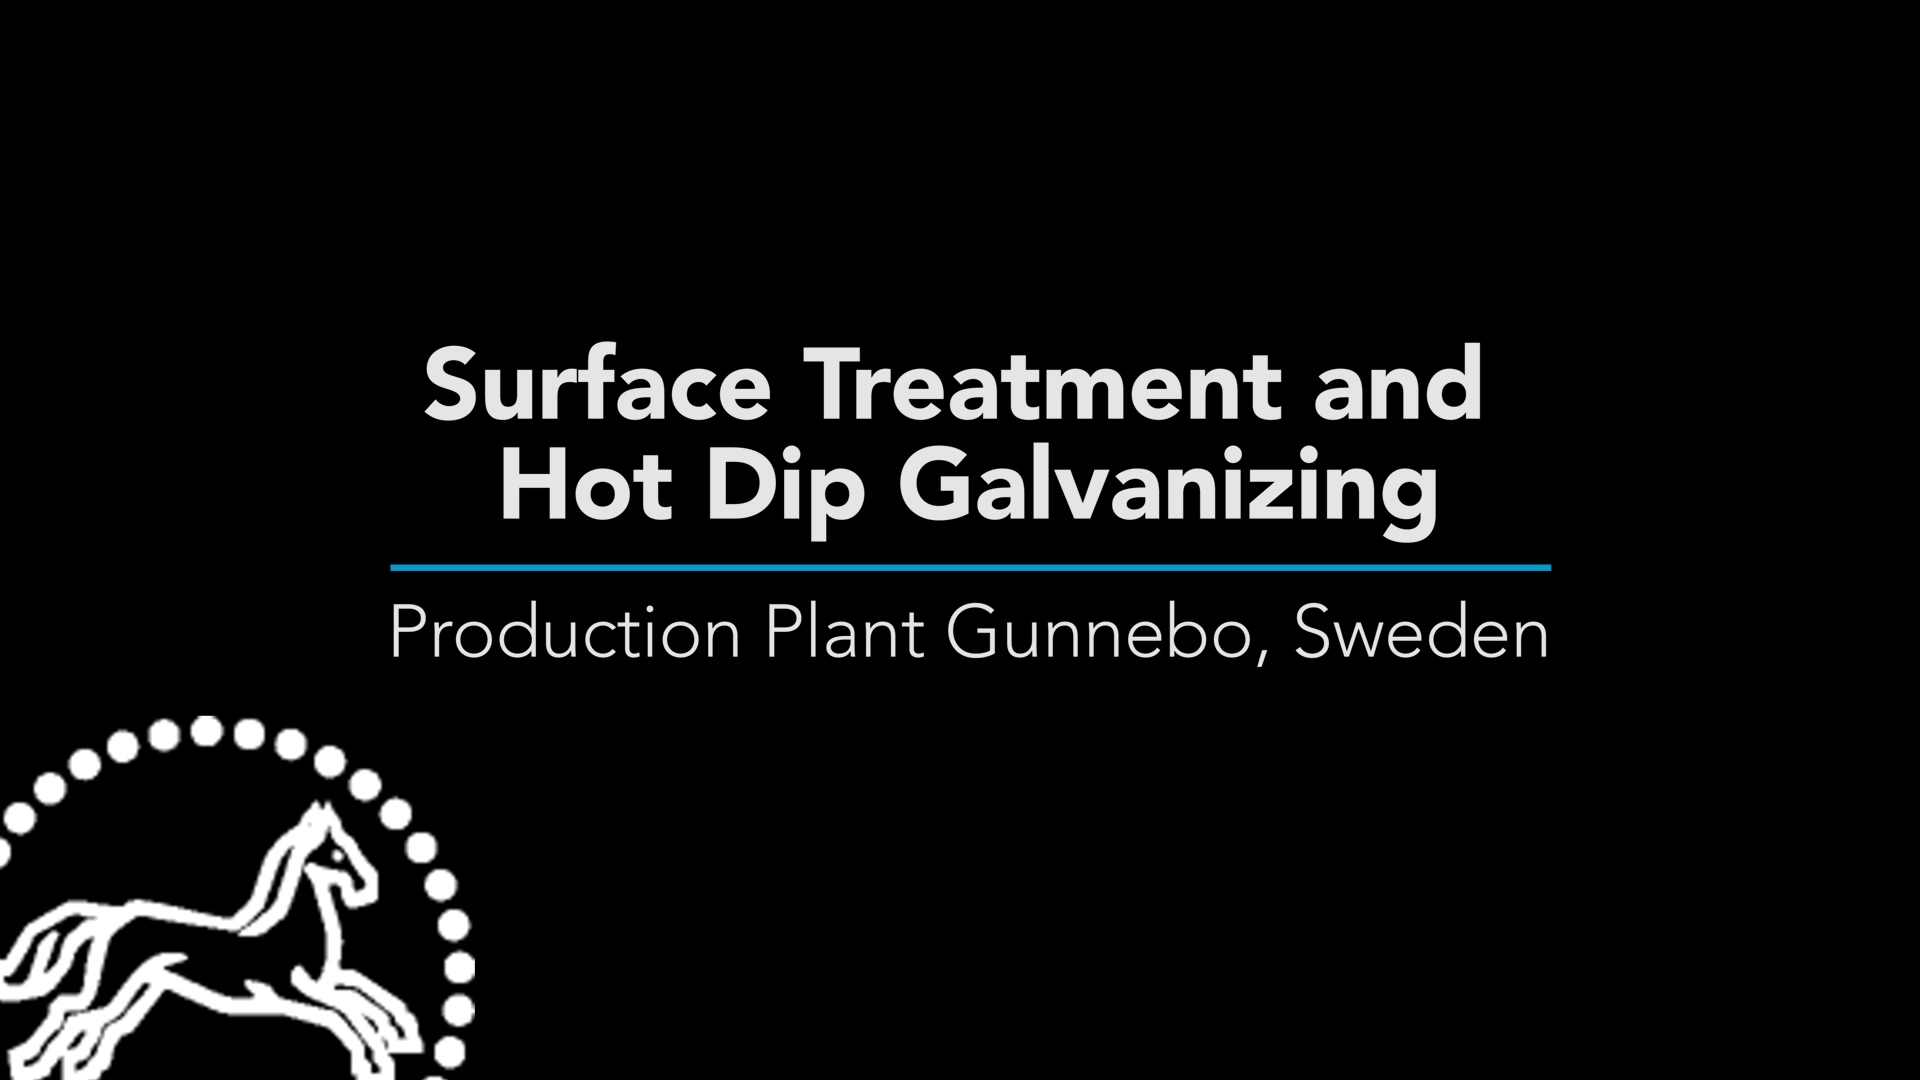 Surface Treatment and Hot Dip Galvanizing Chain